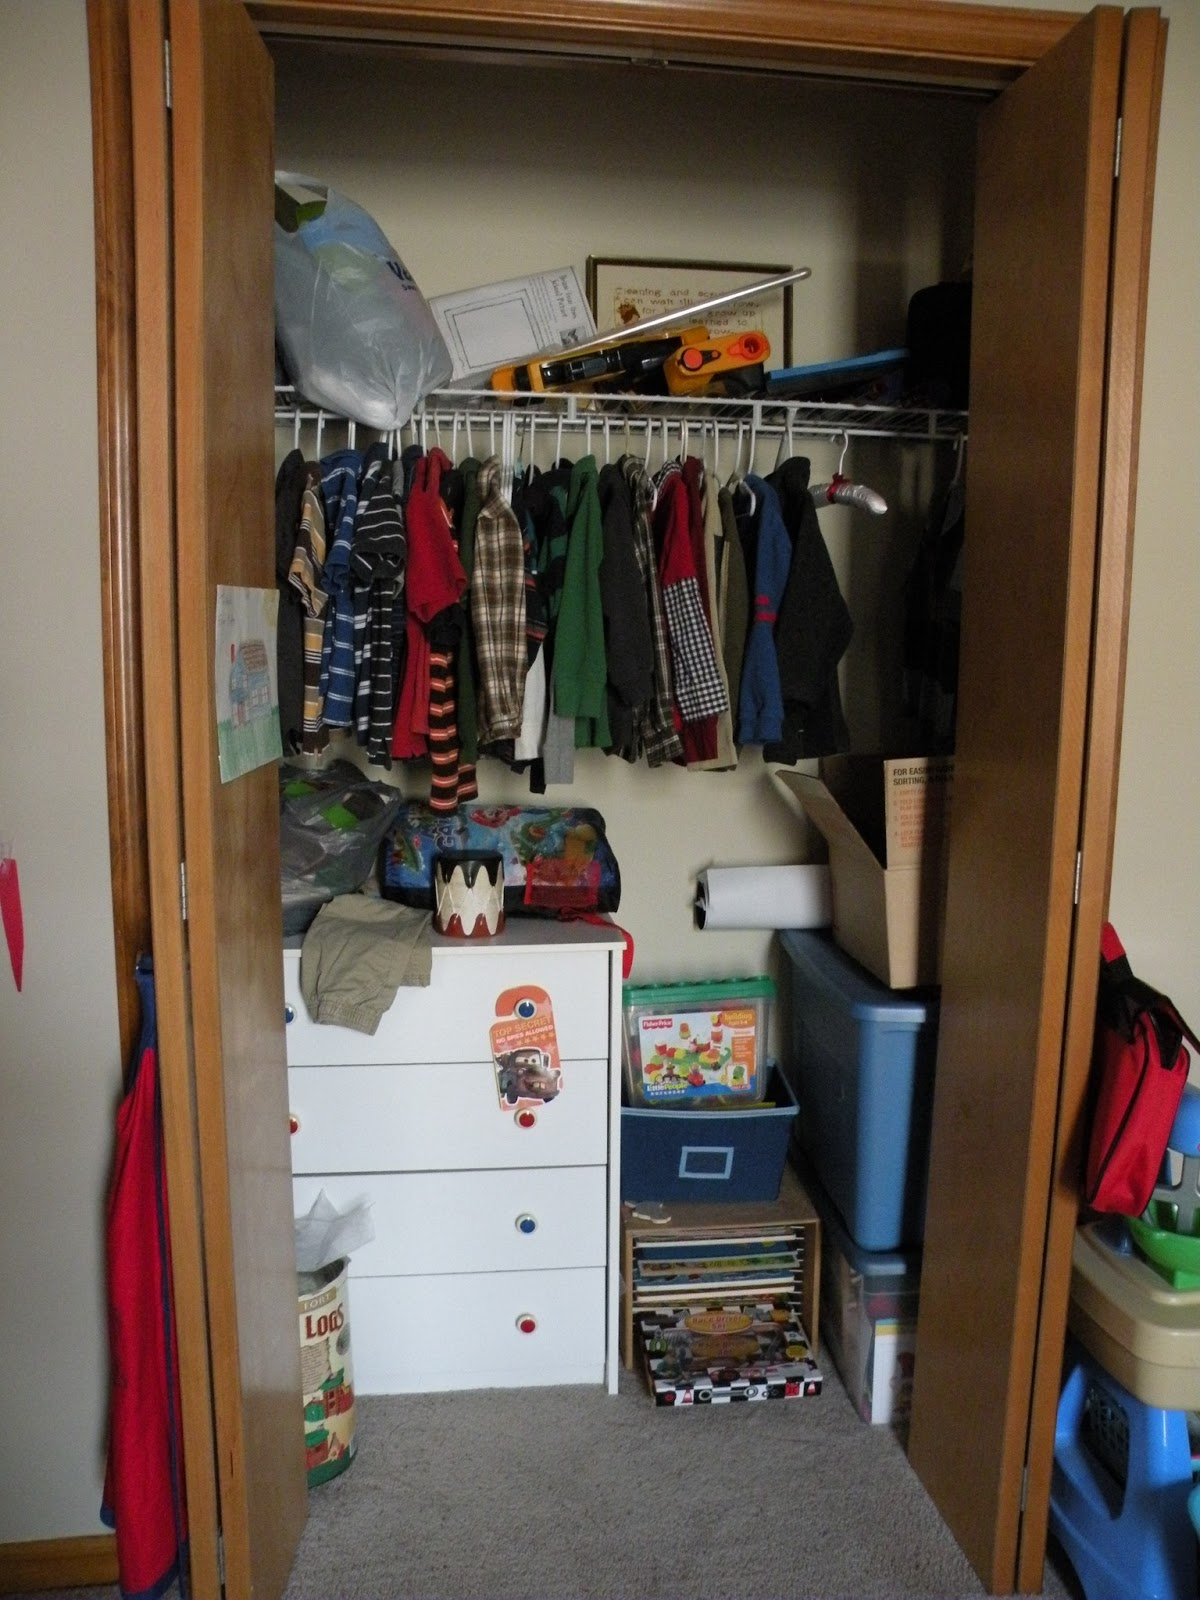 Starting In Closet #1, I Removed The Dresser That Was Holding Out Of Season  Clothes For Both Boys And Found A New Home For It In The Basement.